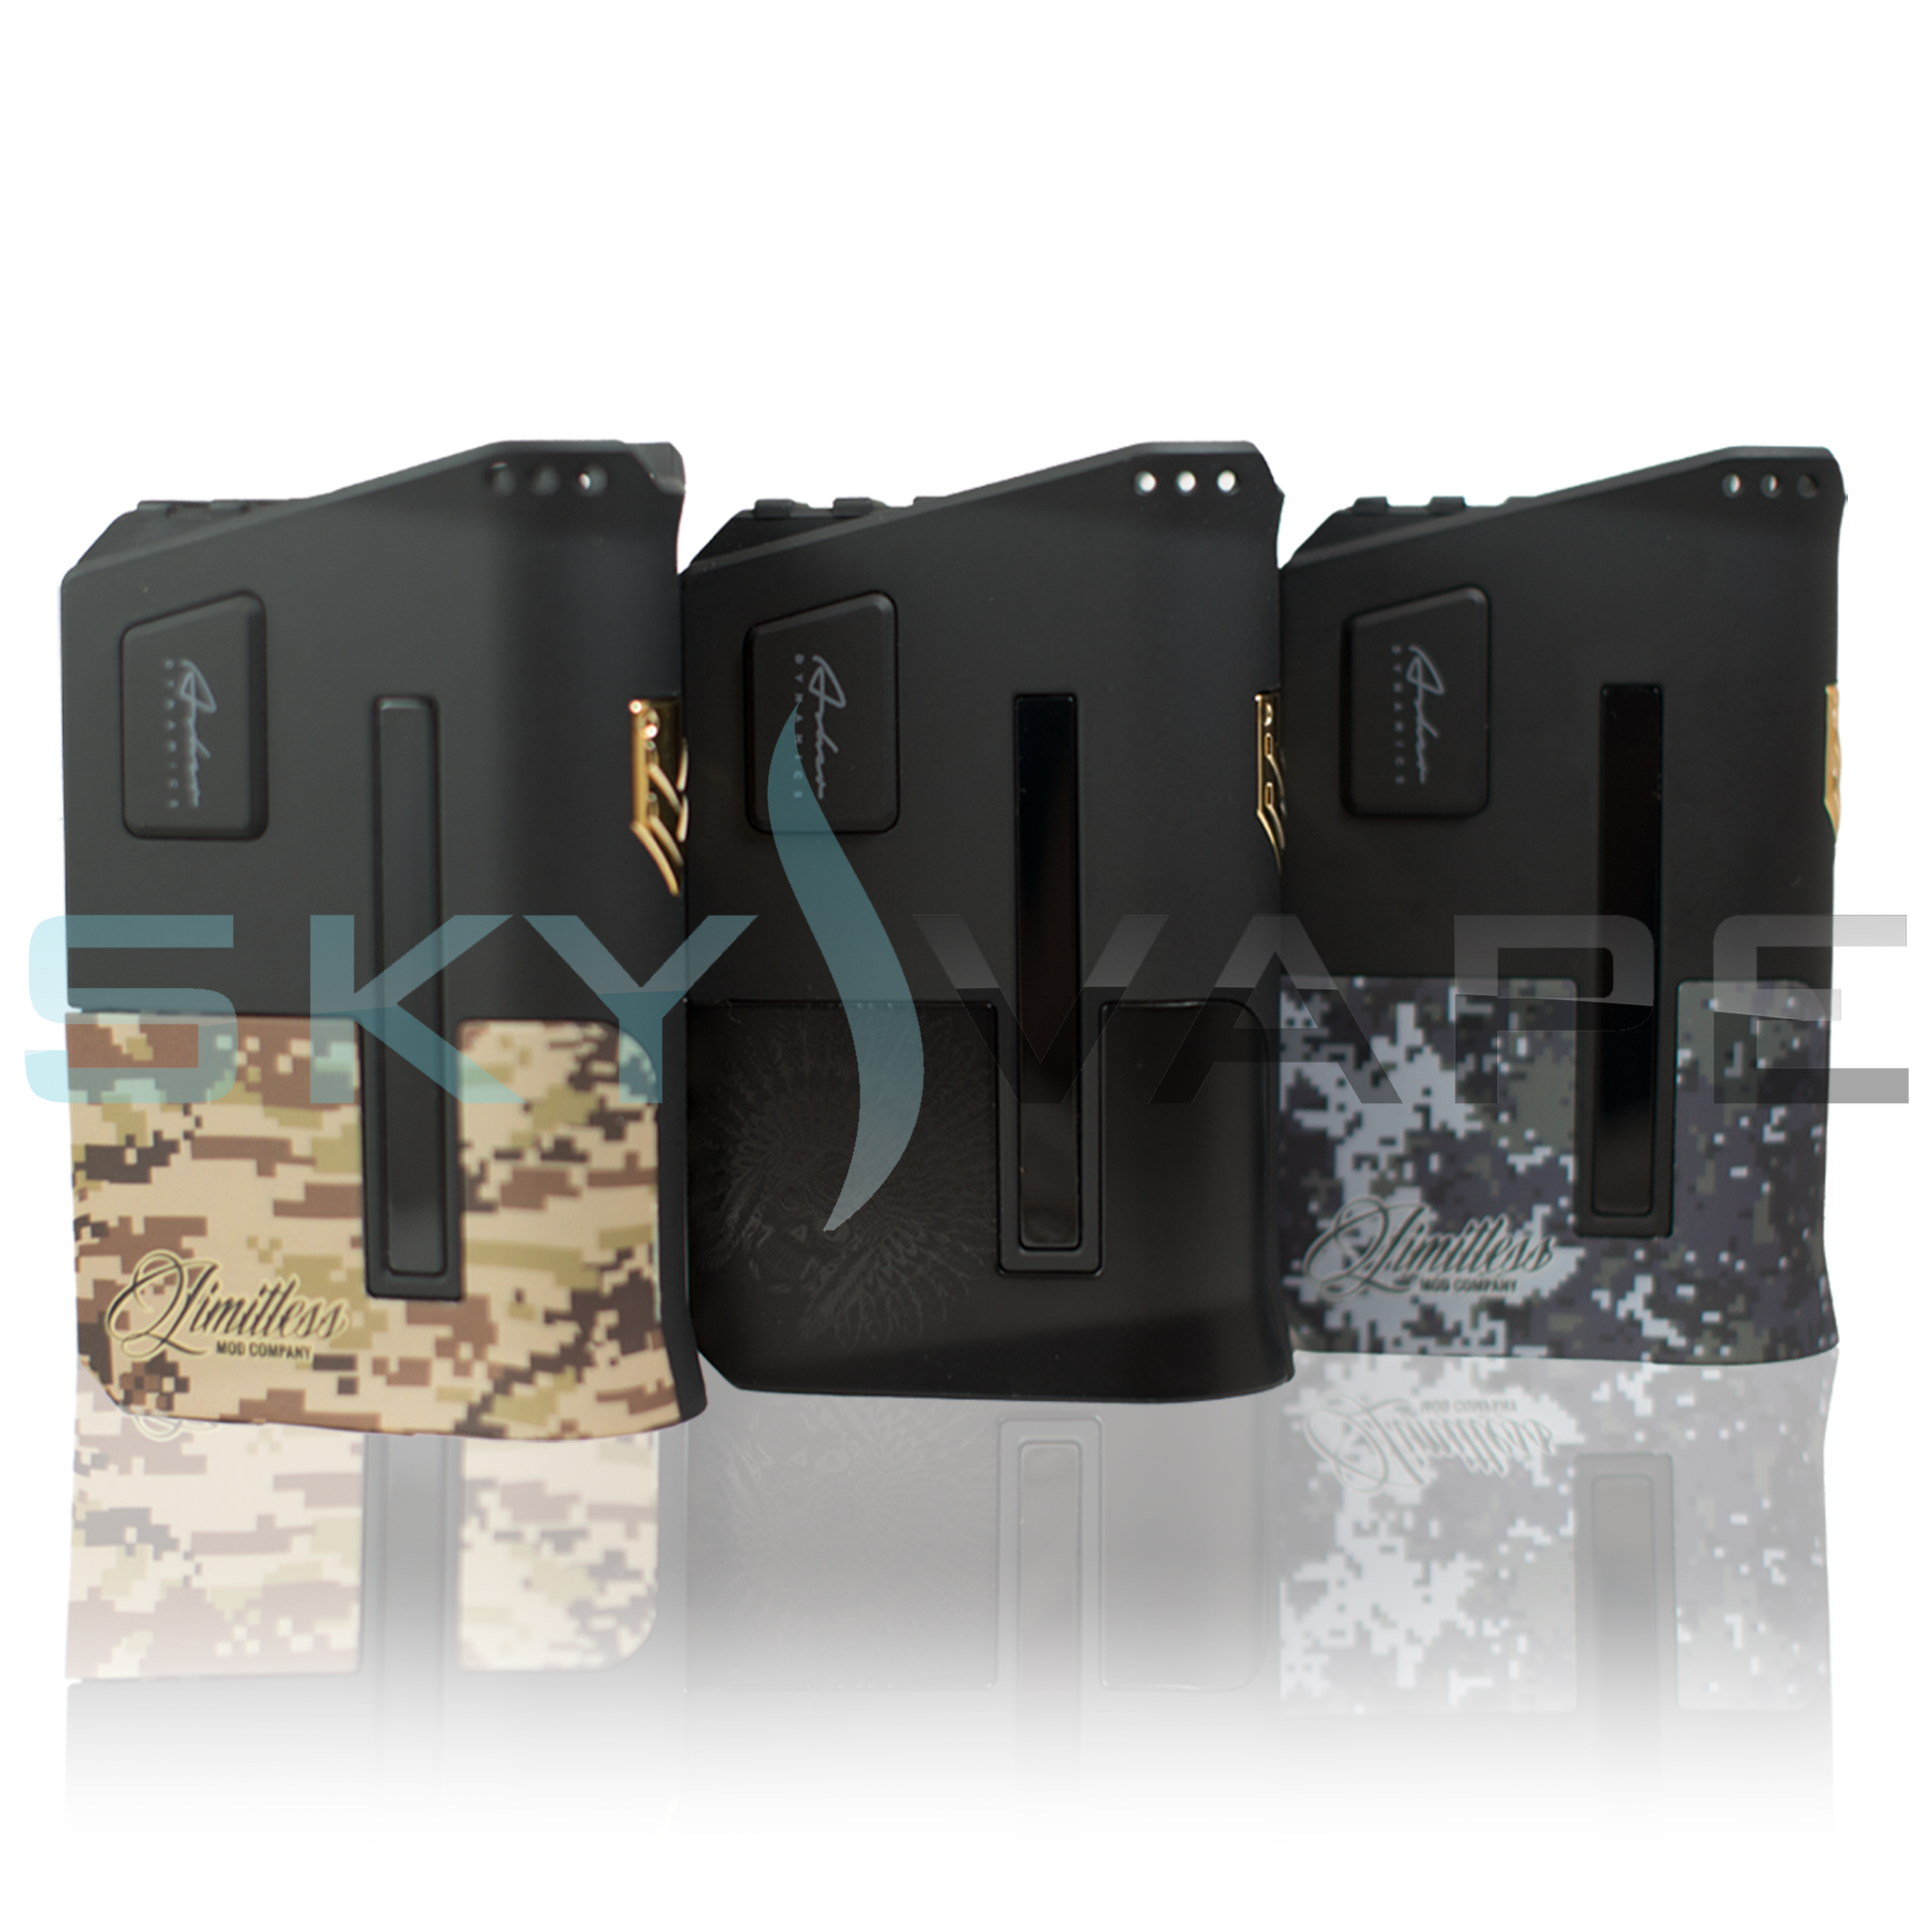 Limitless Arms Race Box Mod